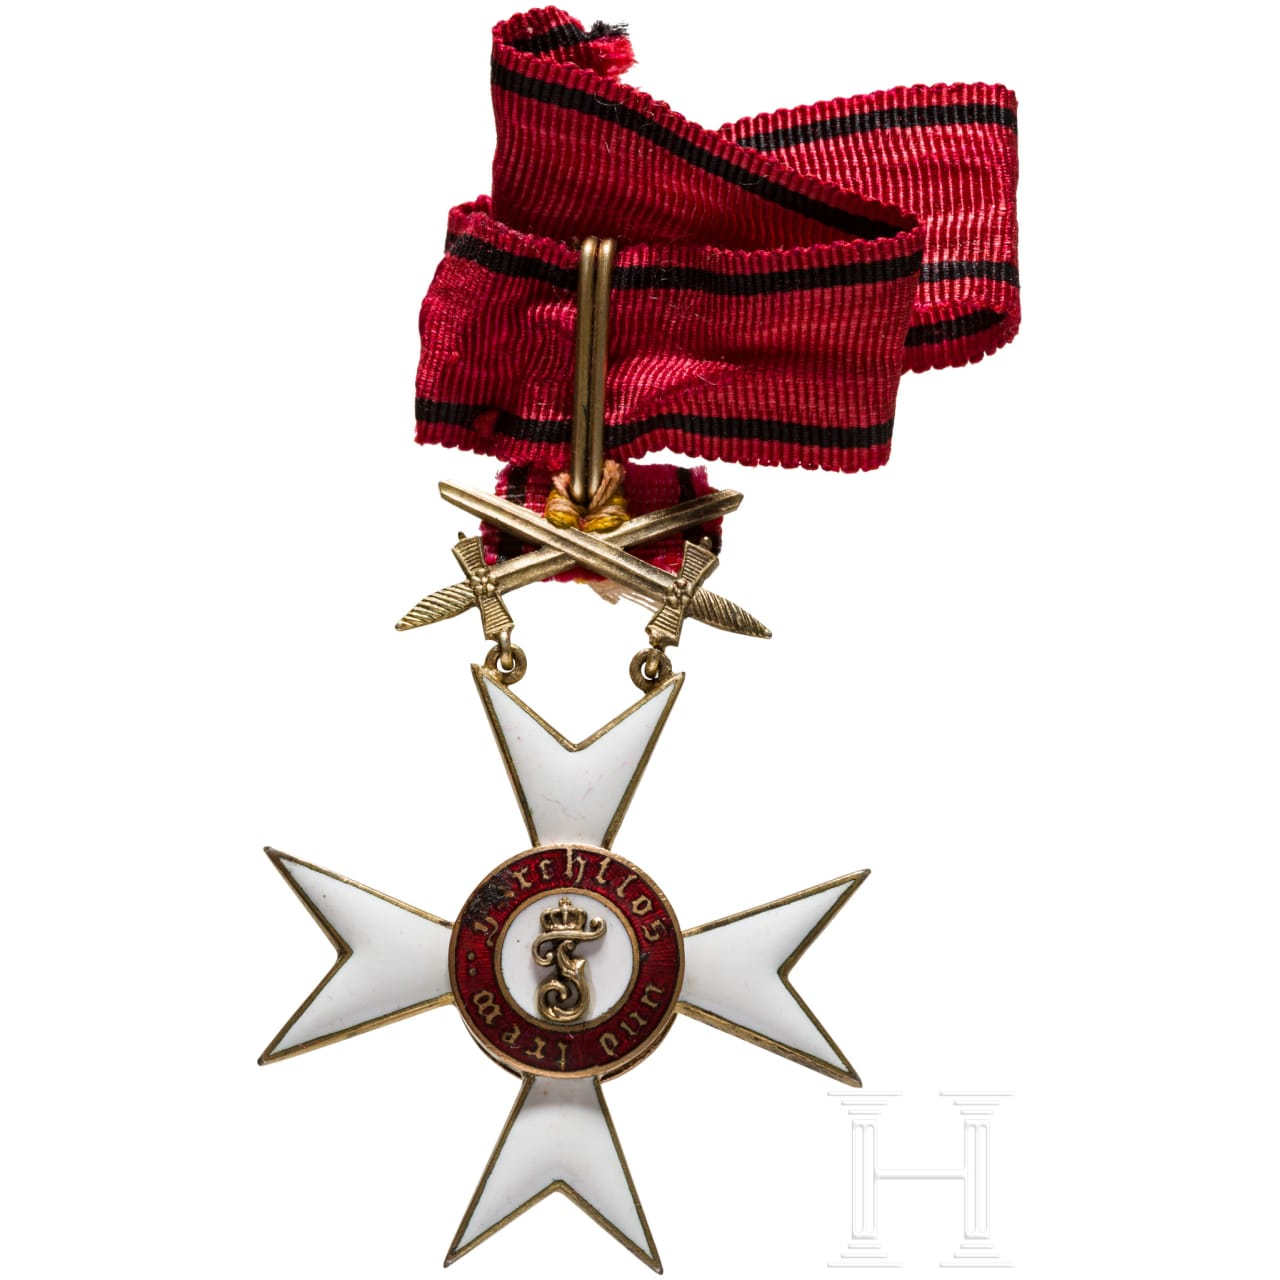 Order of the Wurttemberg Crown - Knight's Cross with swords